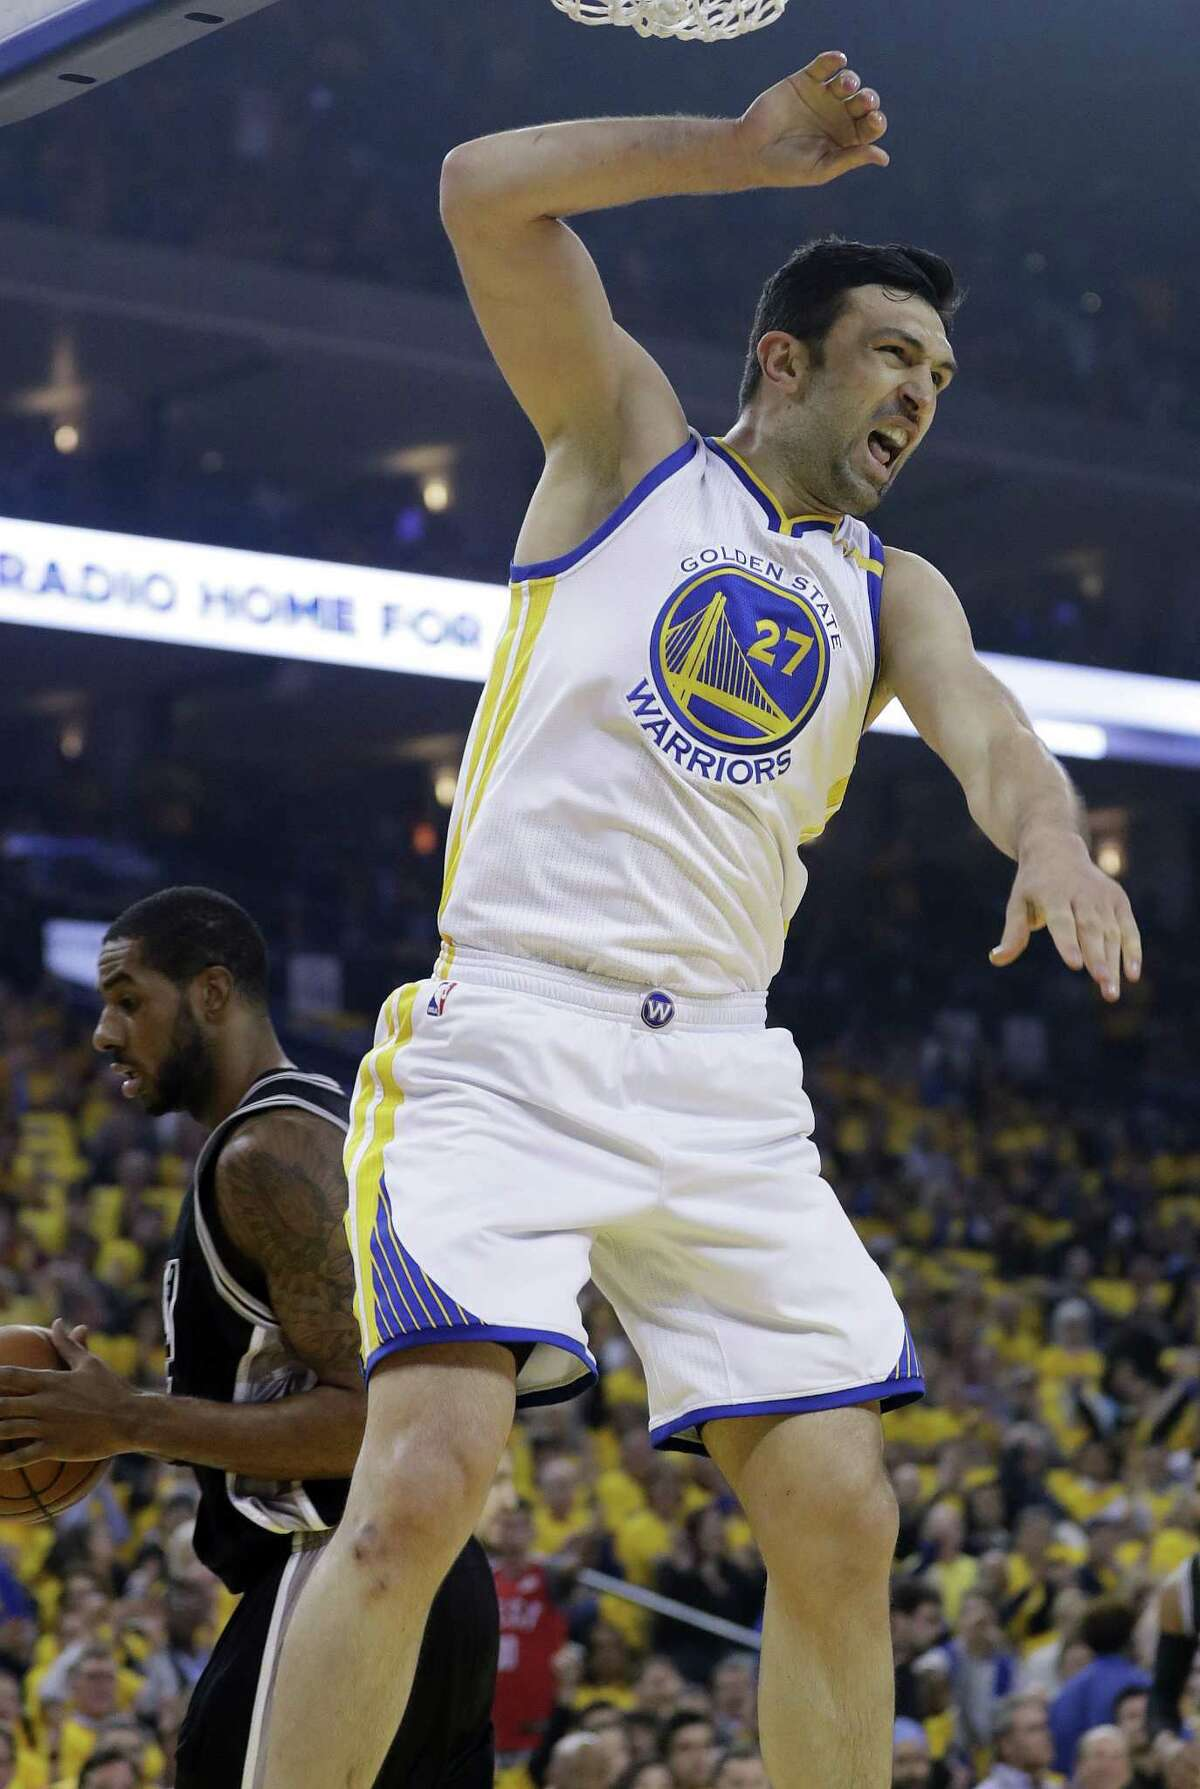 Golden State's Zaza Pachulia celebrates after he dunks on the Spurs during Game 2 on May 16.